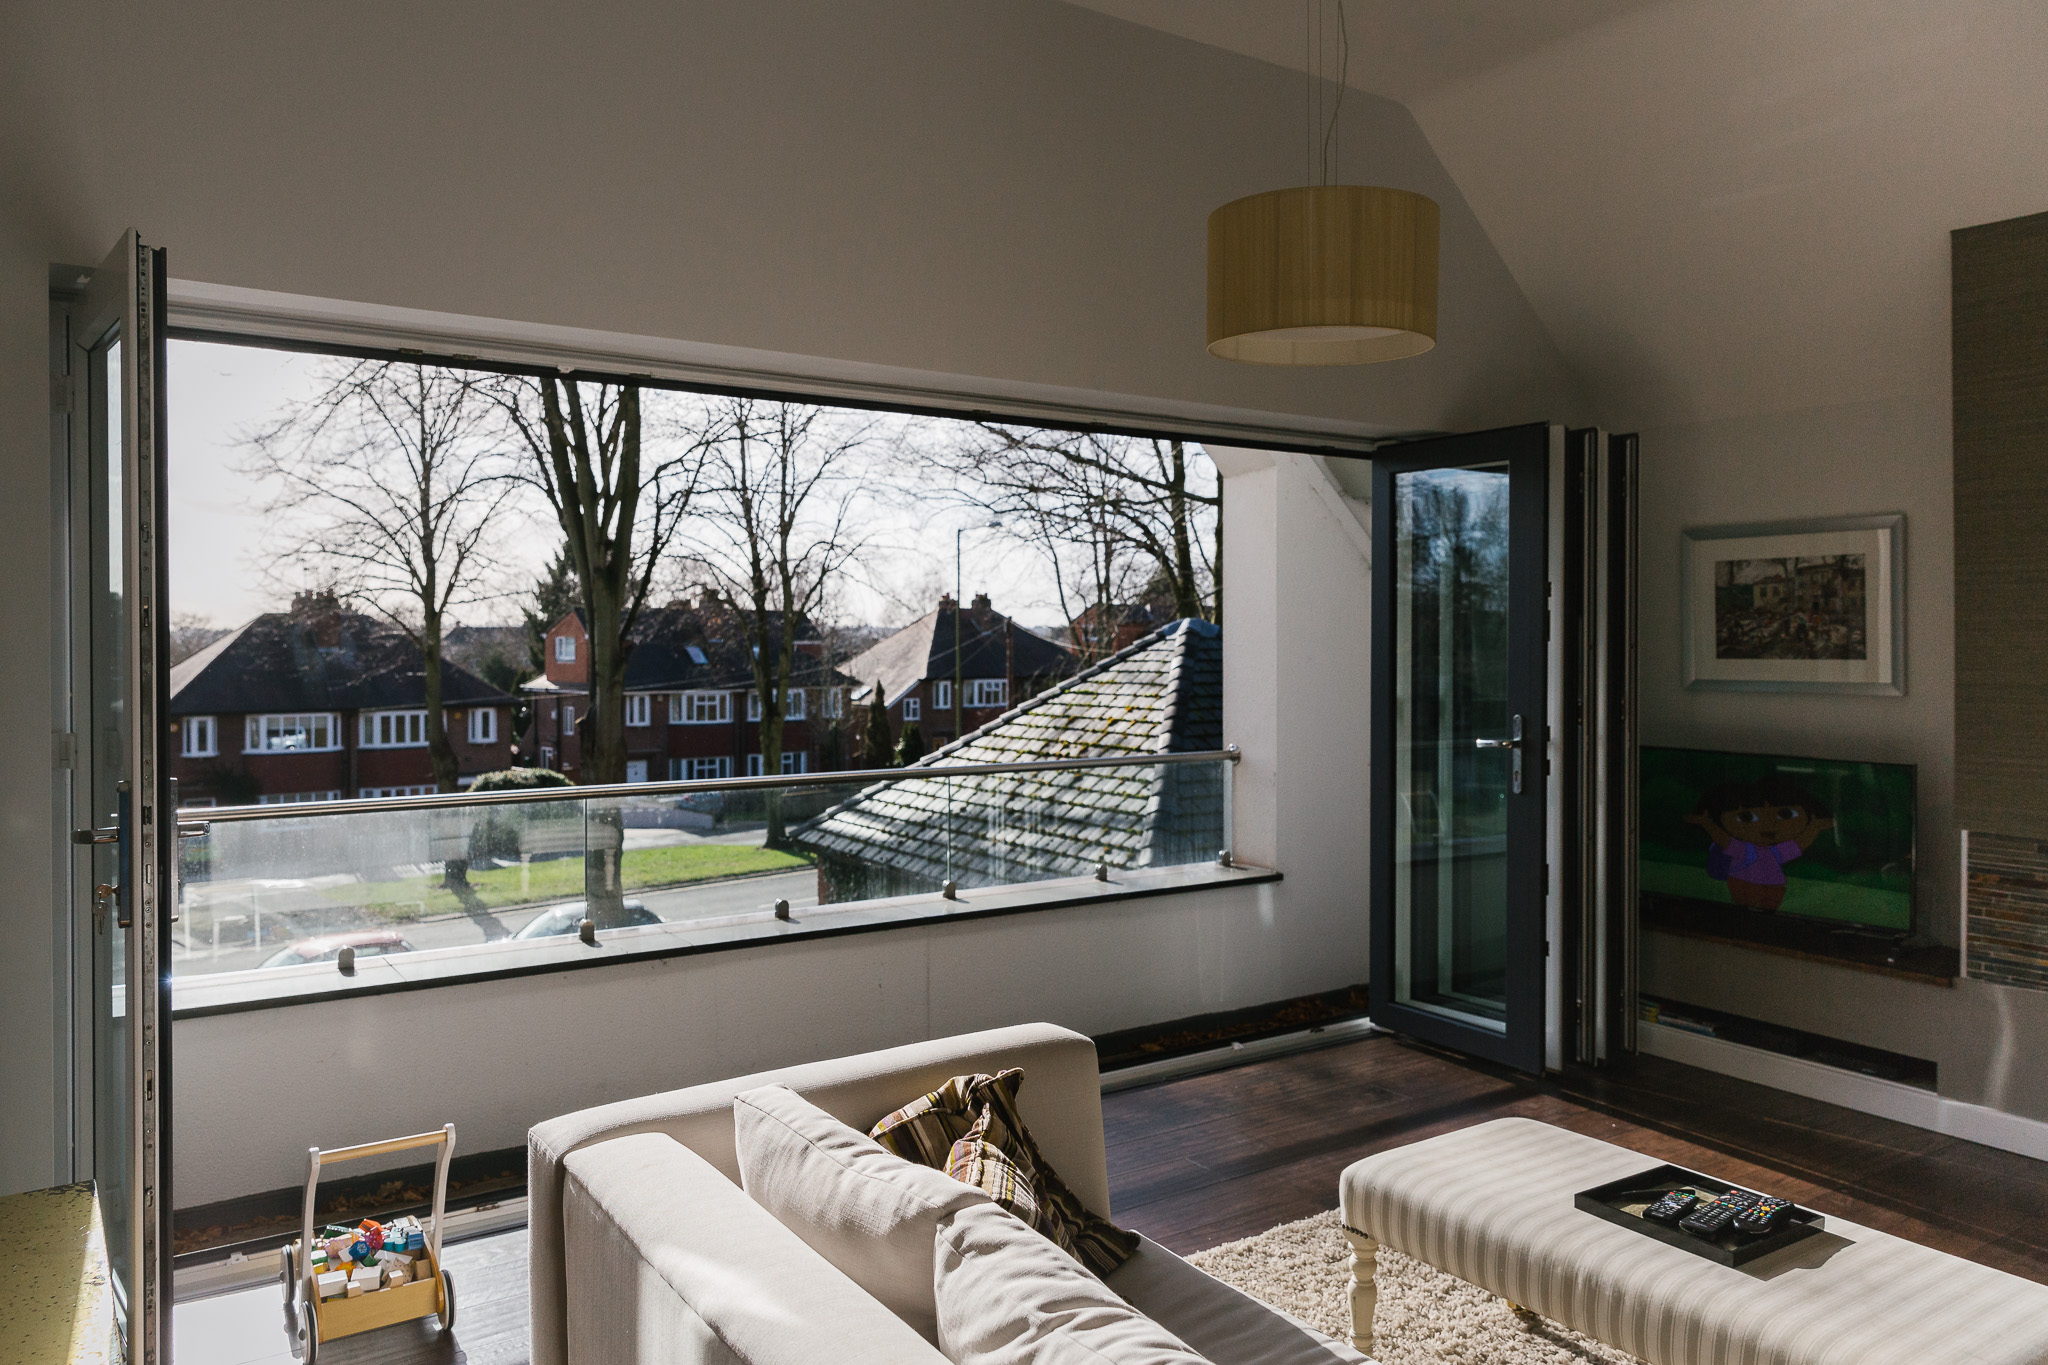 Architectural_Photography_Nottingham_By_Emily_and_Katy_Photography_Low_Res-43.jpg